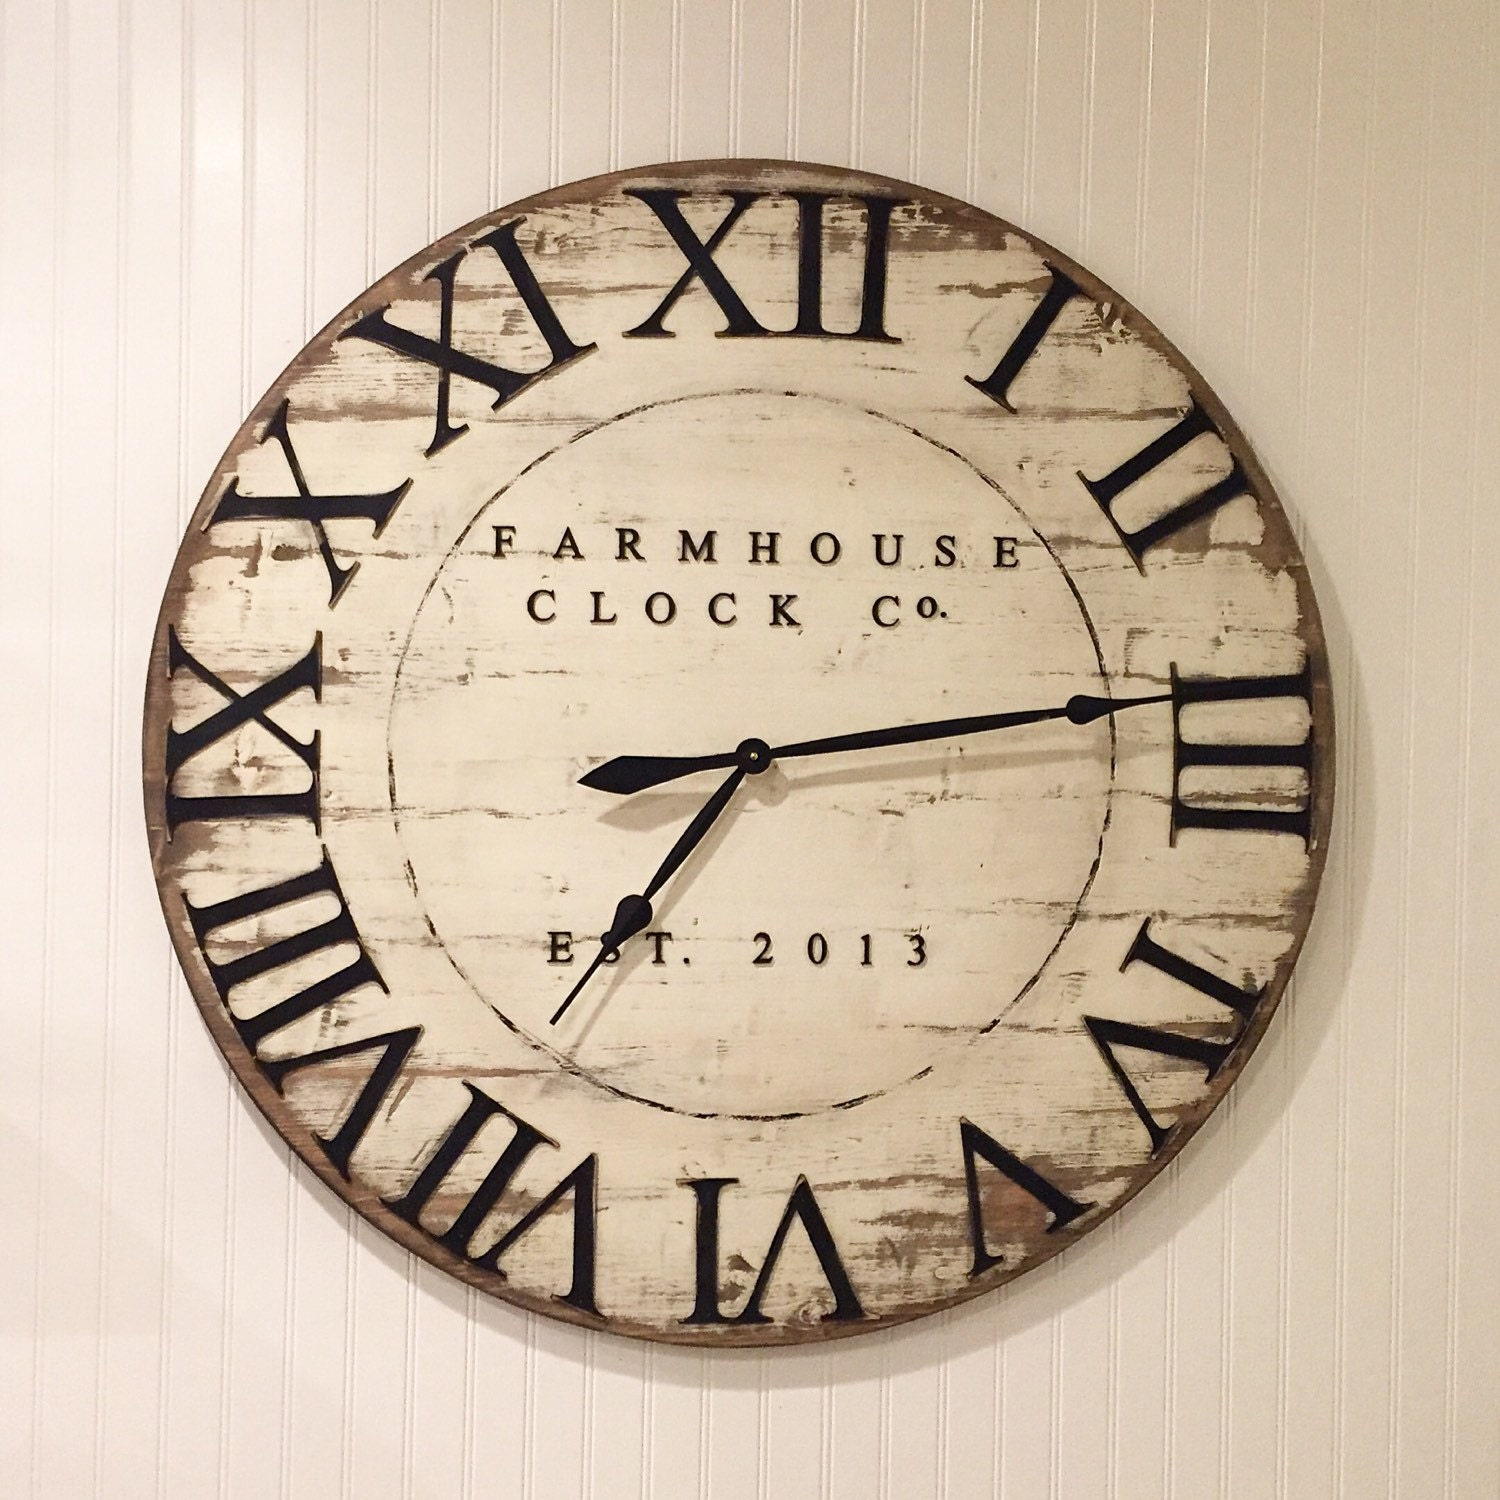 Farmhouse clock co distressed large round wooden wall clock extra large roman numeral farmhouse clock co 30 40 inch wooden clock amipublicfo Image collections